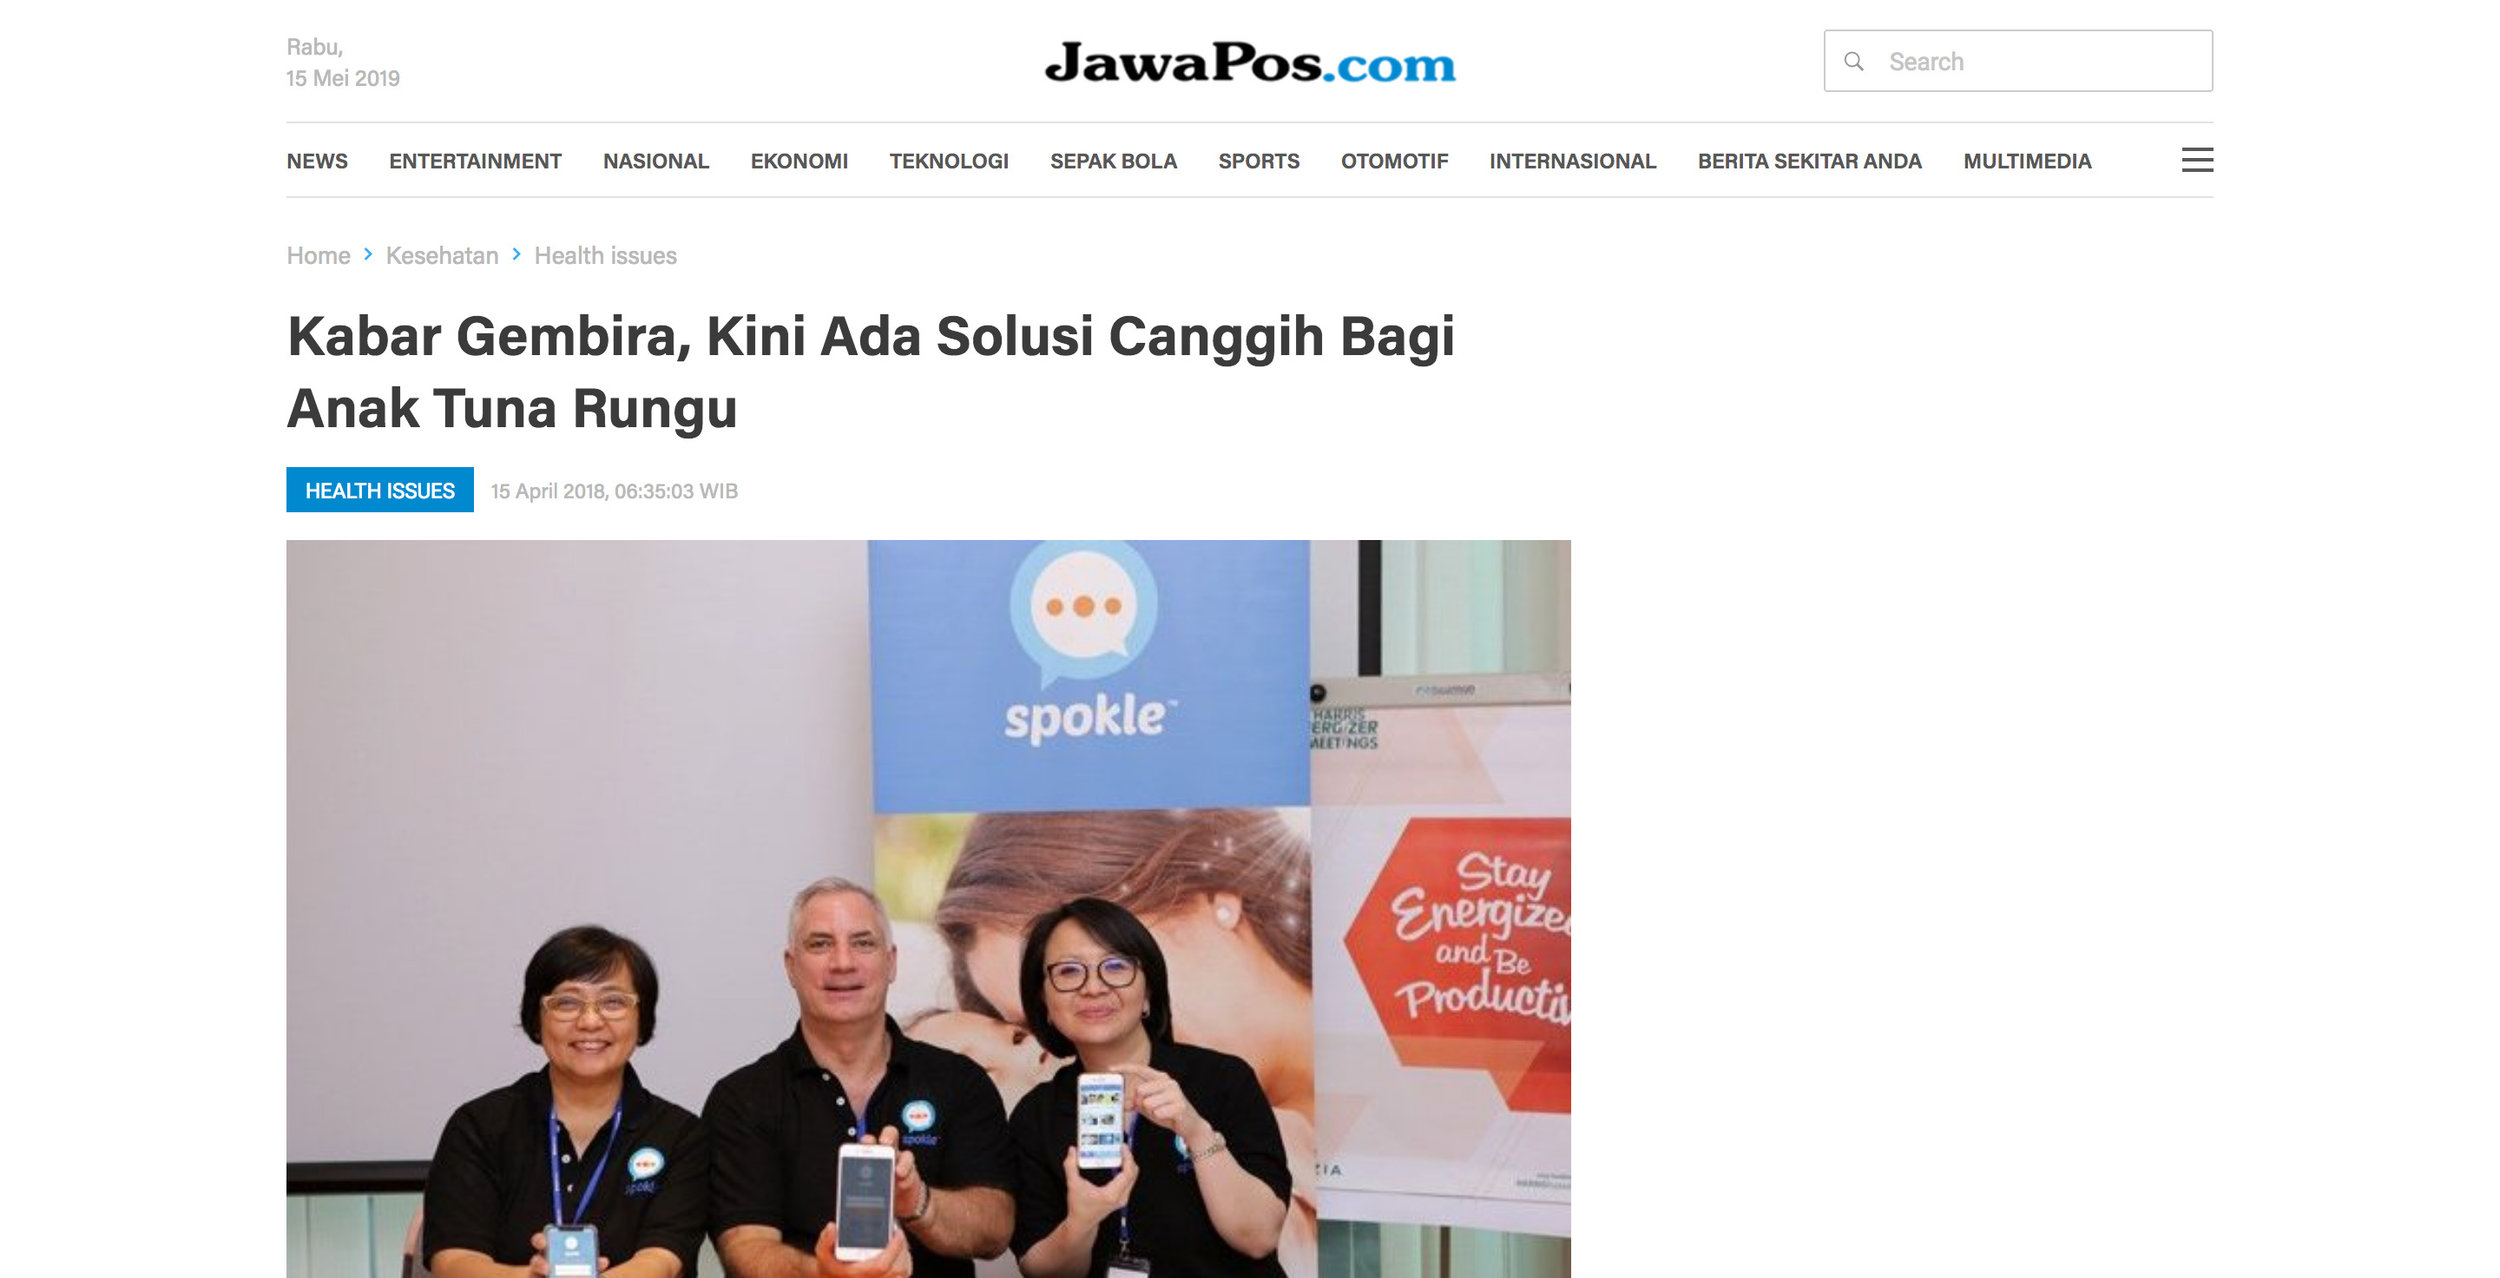 Jawa Pos article about Spokle App